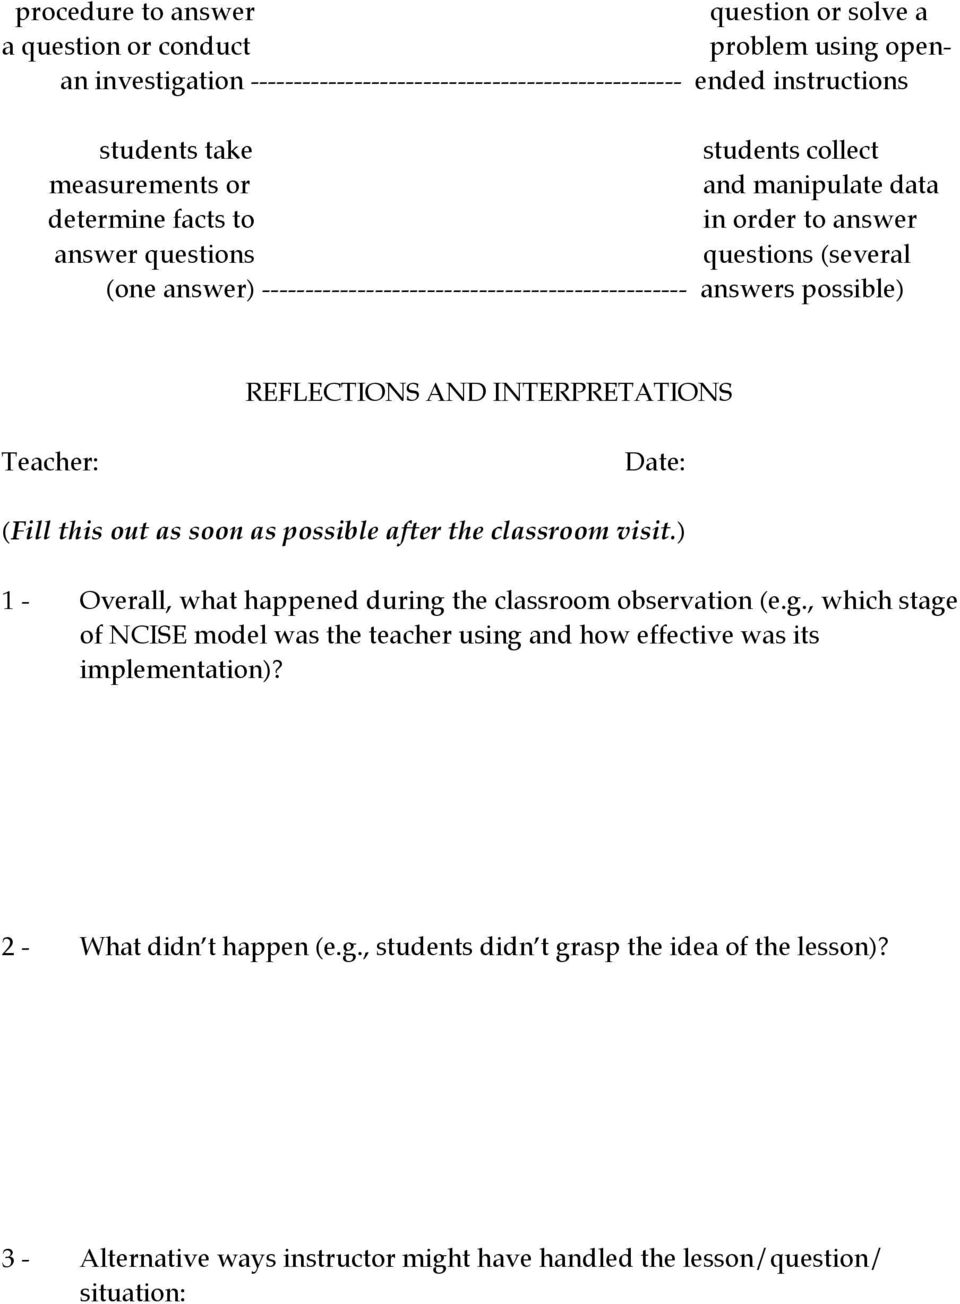 REFLECTIONS AND INTERPRETATIONS Teacher: Date: (Fill this out as soon as possible after the classroom visit.) 1 - Overall, what happened during